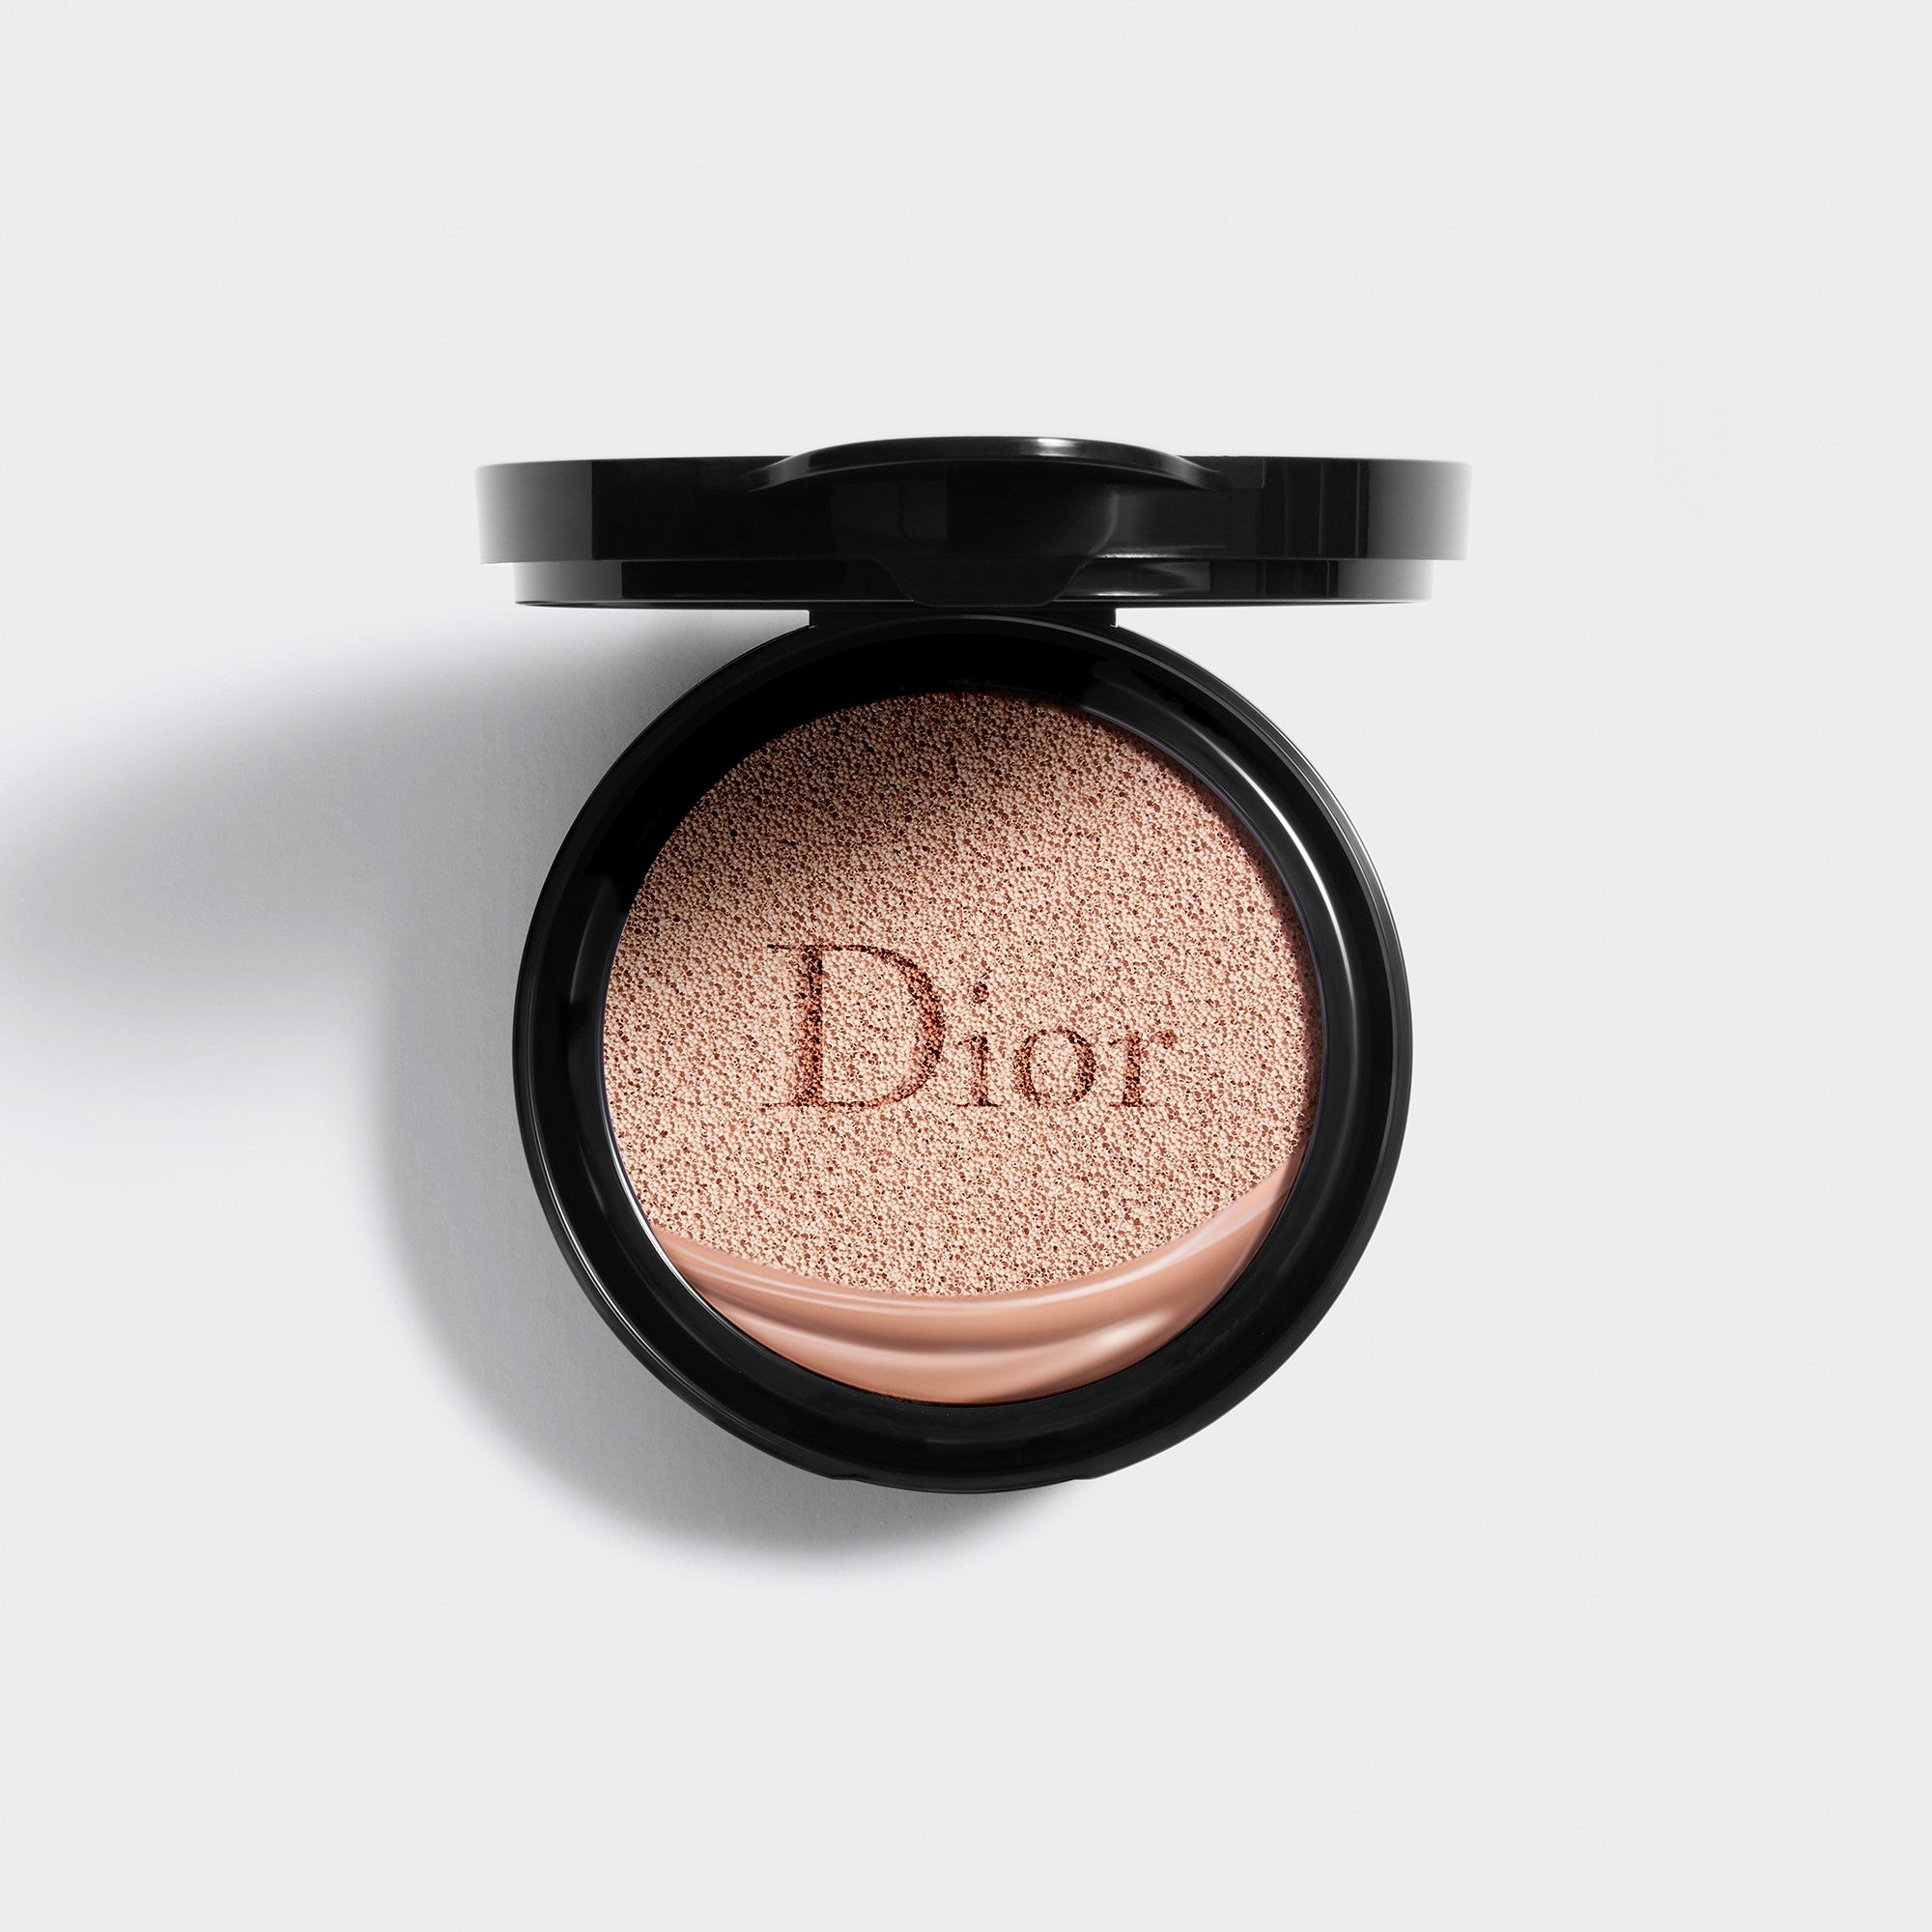 DIOR PRESTIGE | Cushion Foundation - Le Cushion Teint de Rose - the refill